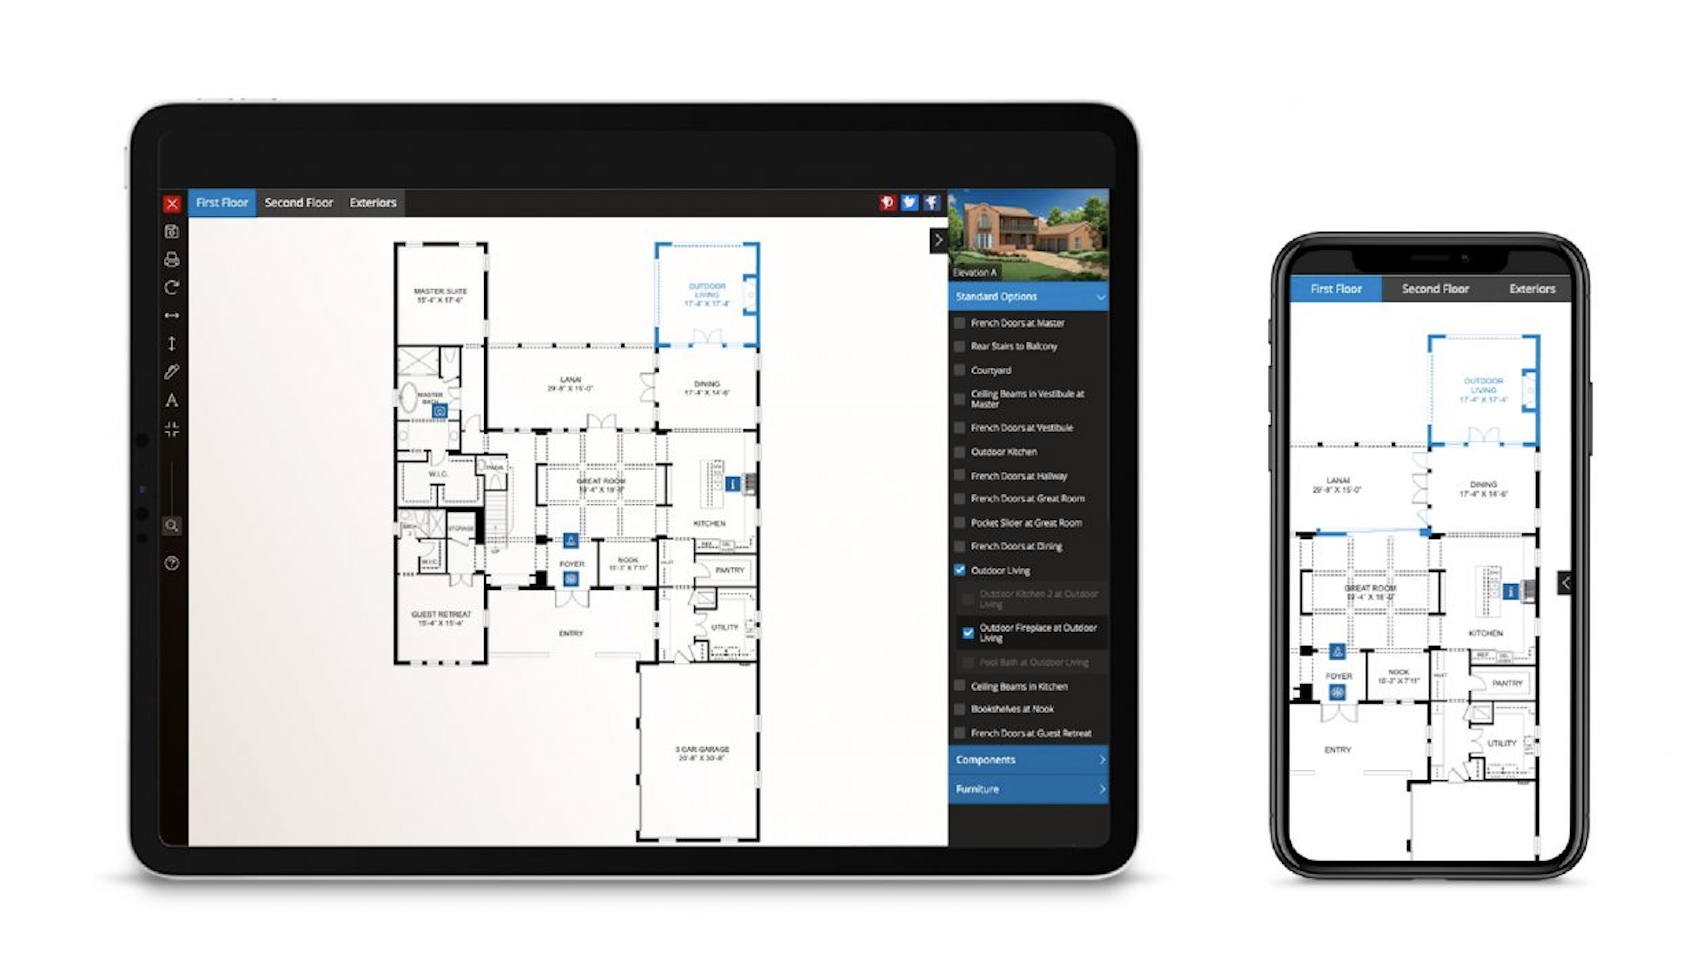 Stay Current with Interactive Floor Plans